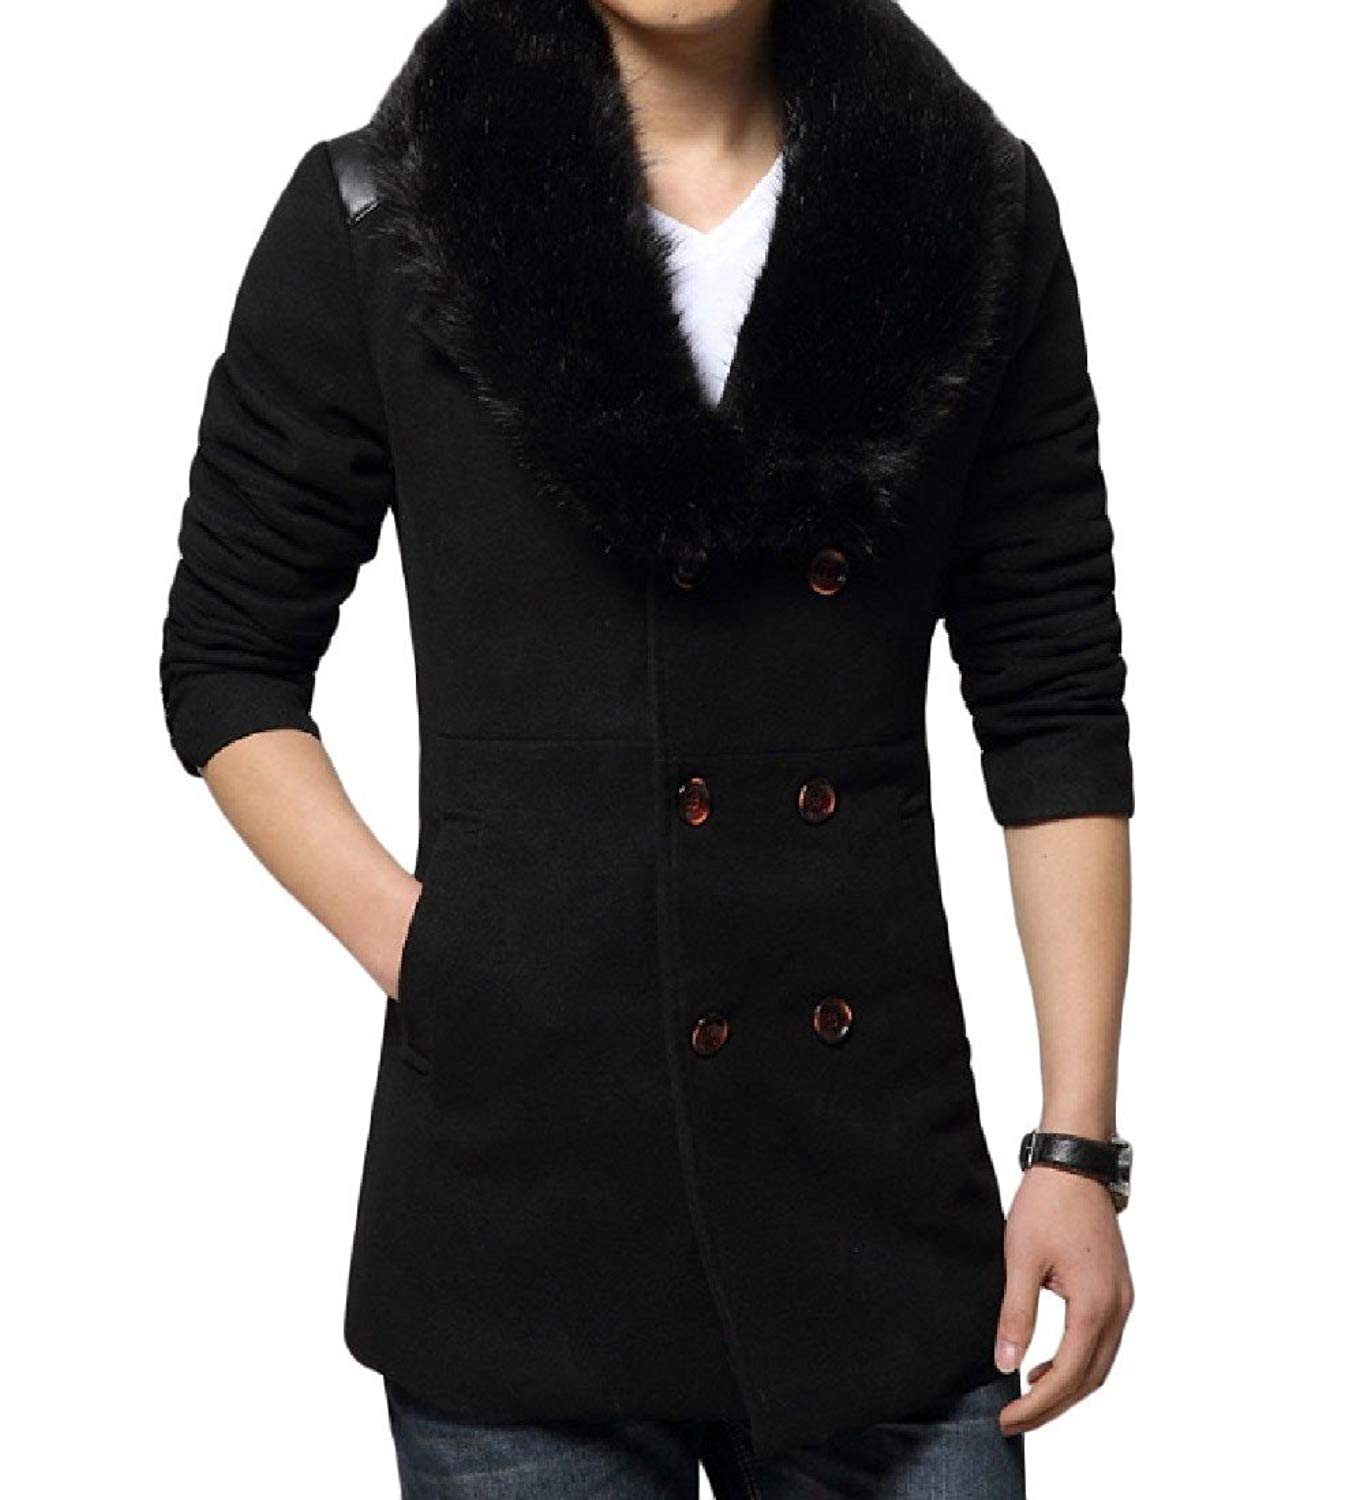 ONTBYB Mens Stylish Stand Collar Single Breasted Mid-Weight Wool Blend Peacoats